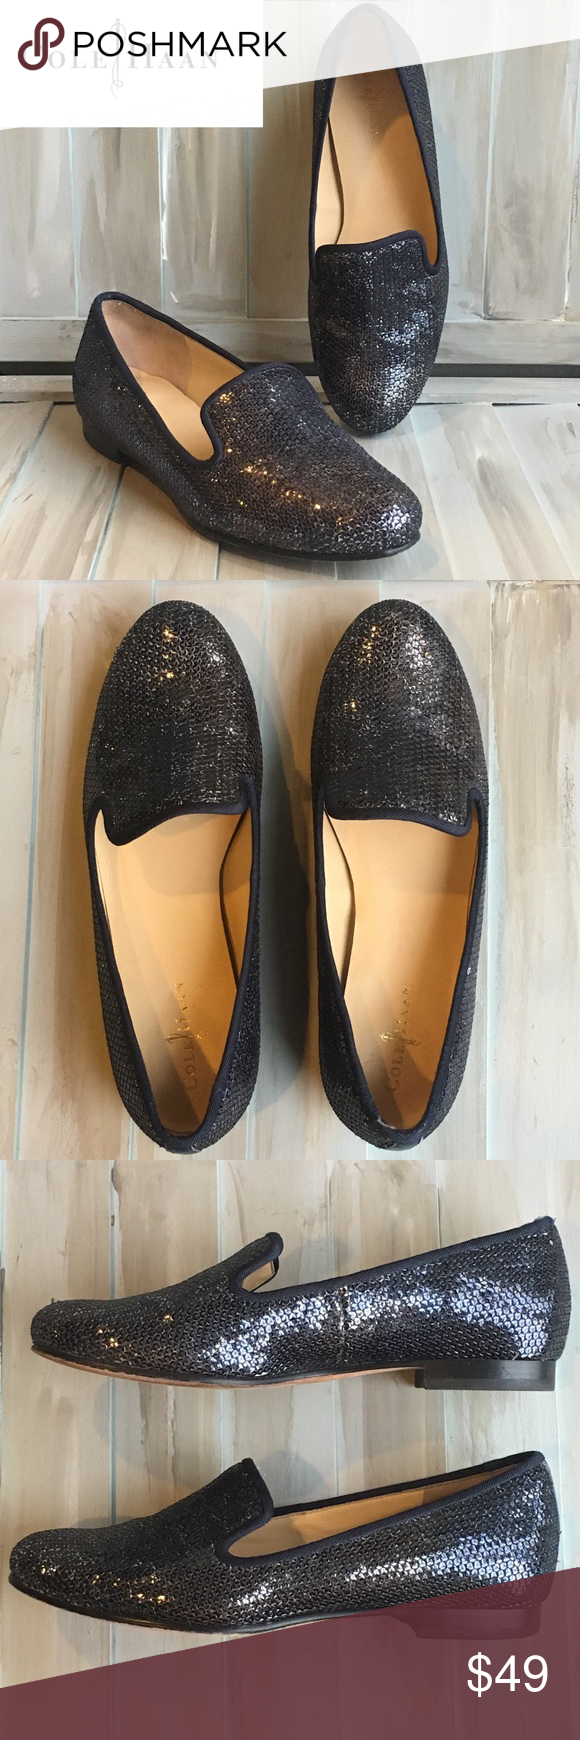 0f9f3a17372 COLE HAAN Sz 5B Sabrina sequin smoking slippers Beautiful COLE HAAN (and  Nike Air)